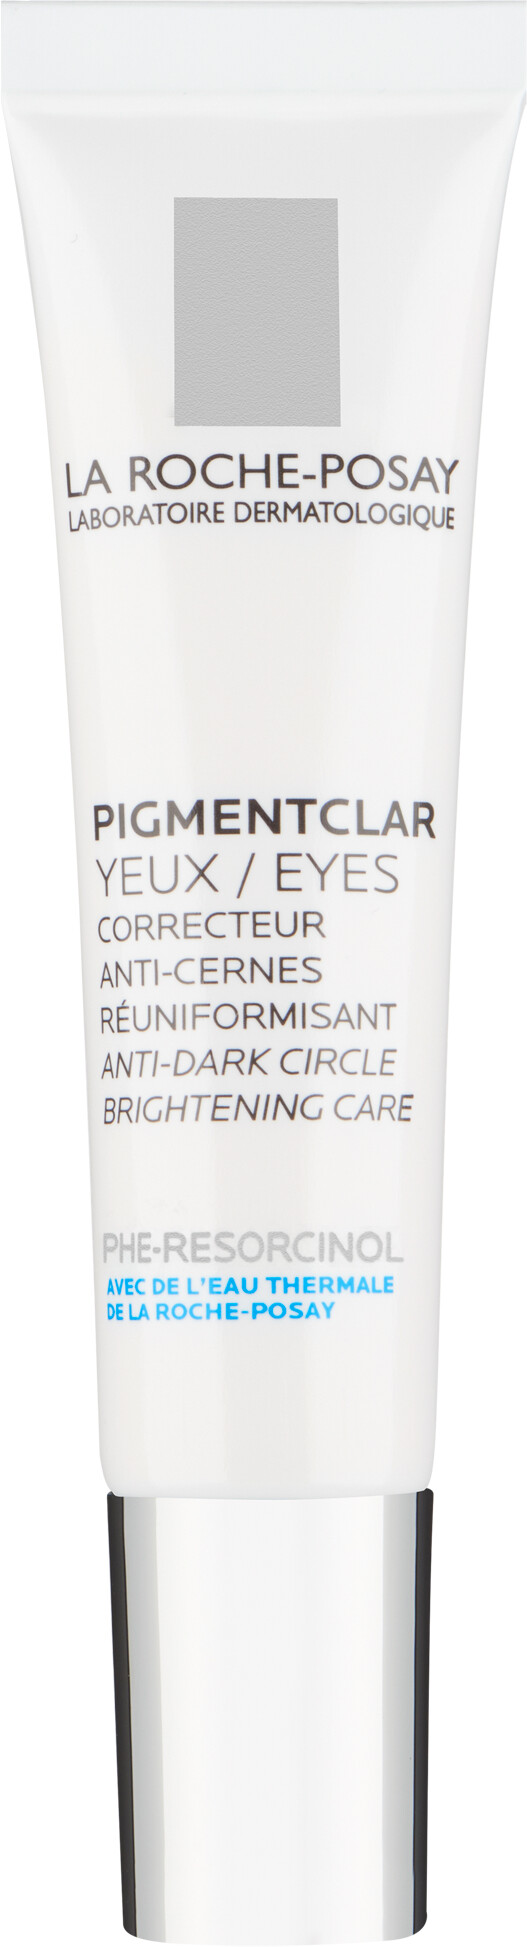 La Roche Posay Pigmentclar Eyes Dark Circle Skin Evening